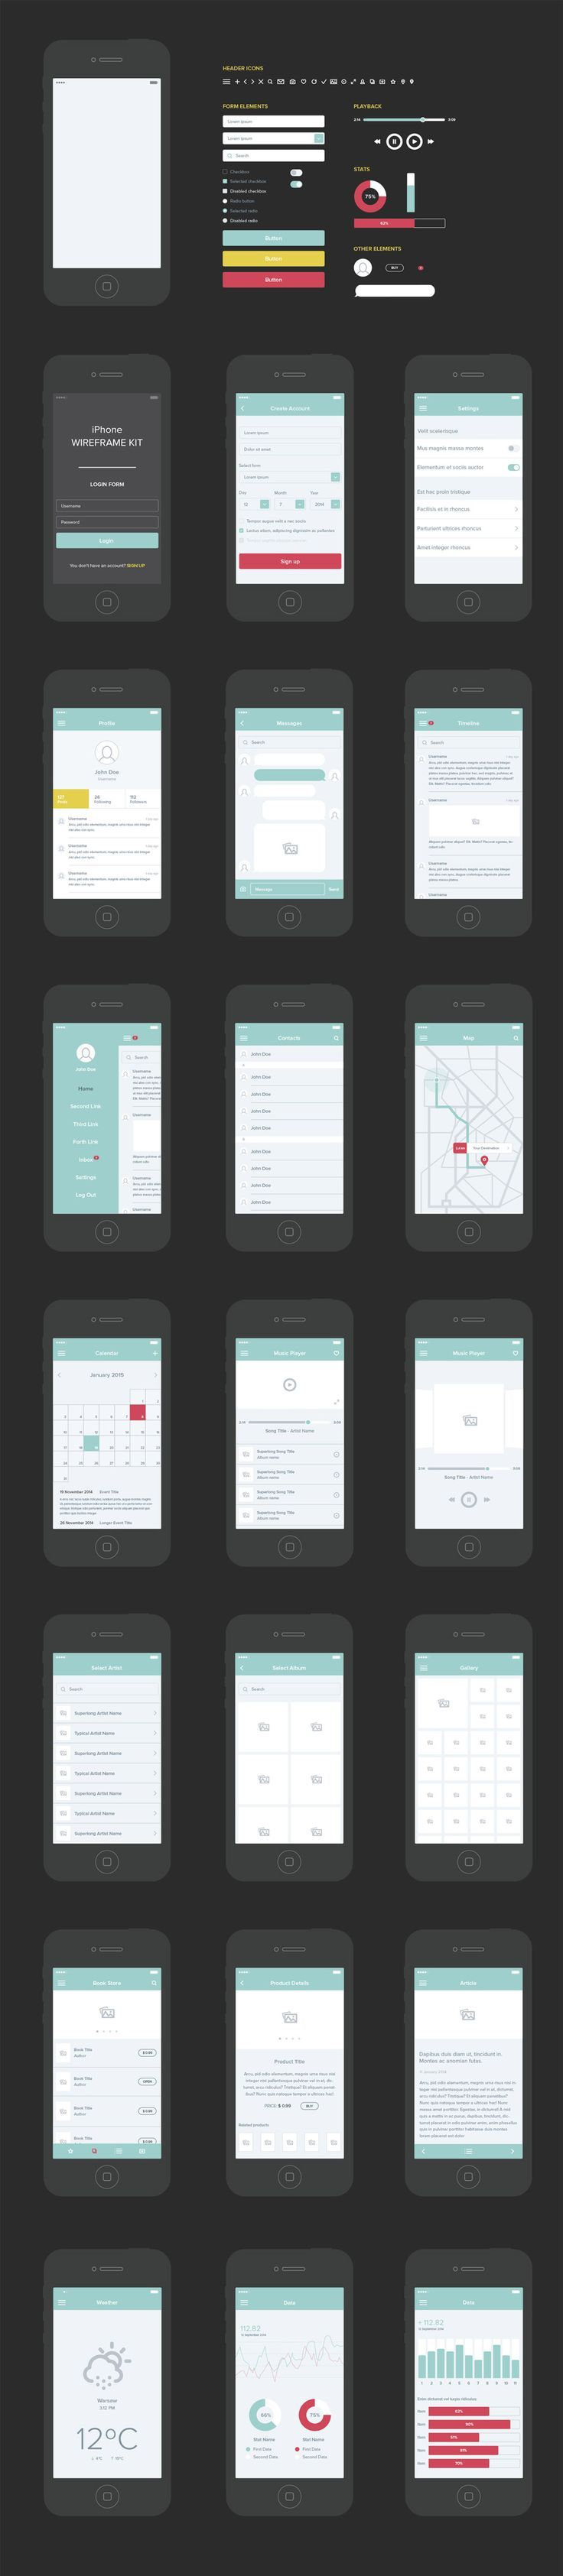 #Freebie: Free Vector UX / UI Wireframe Kit. The UX Blog podcast is also available on iTunes.